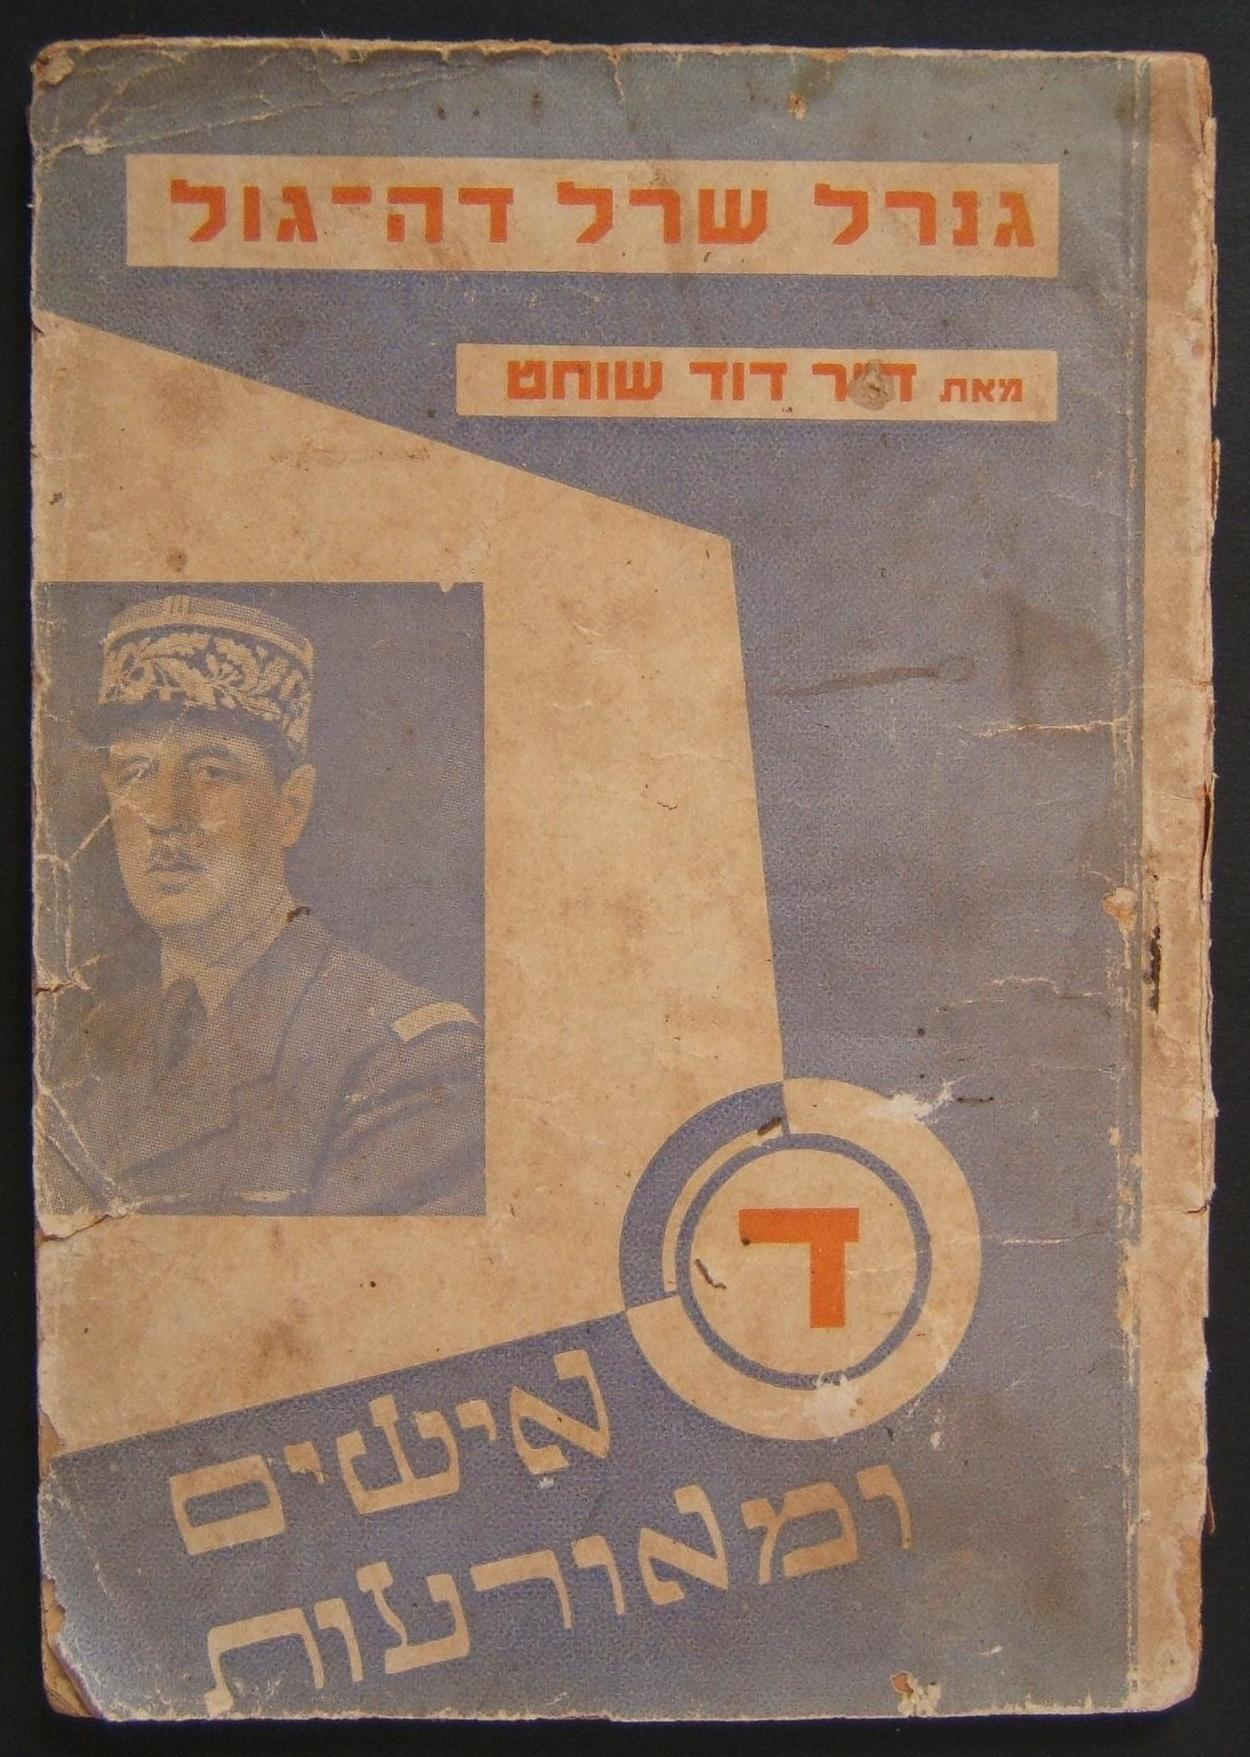 Palestine/Yishuv: early Charles de Gaulle publicity - in Hebrew, 1941: 61 pg booklet (#4 of